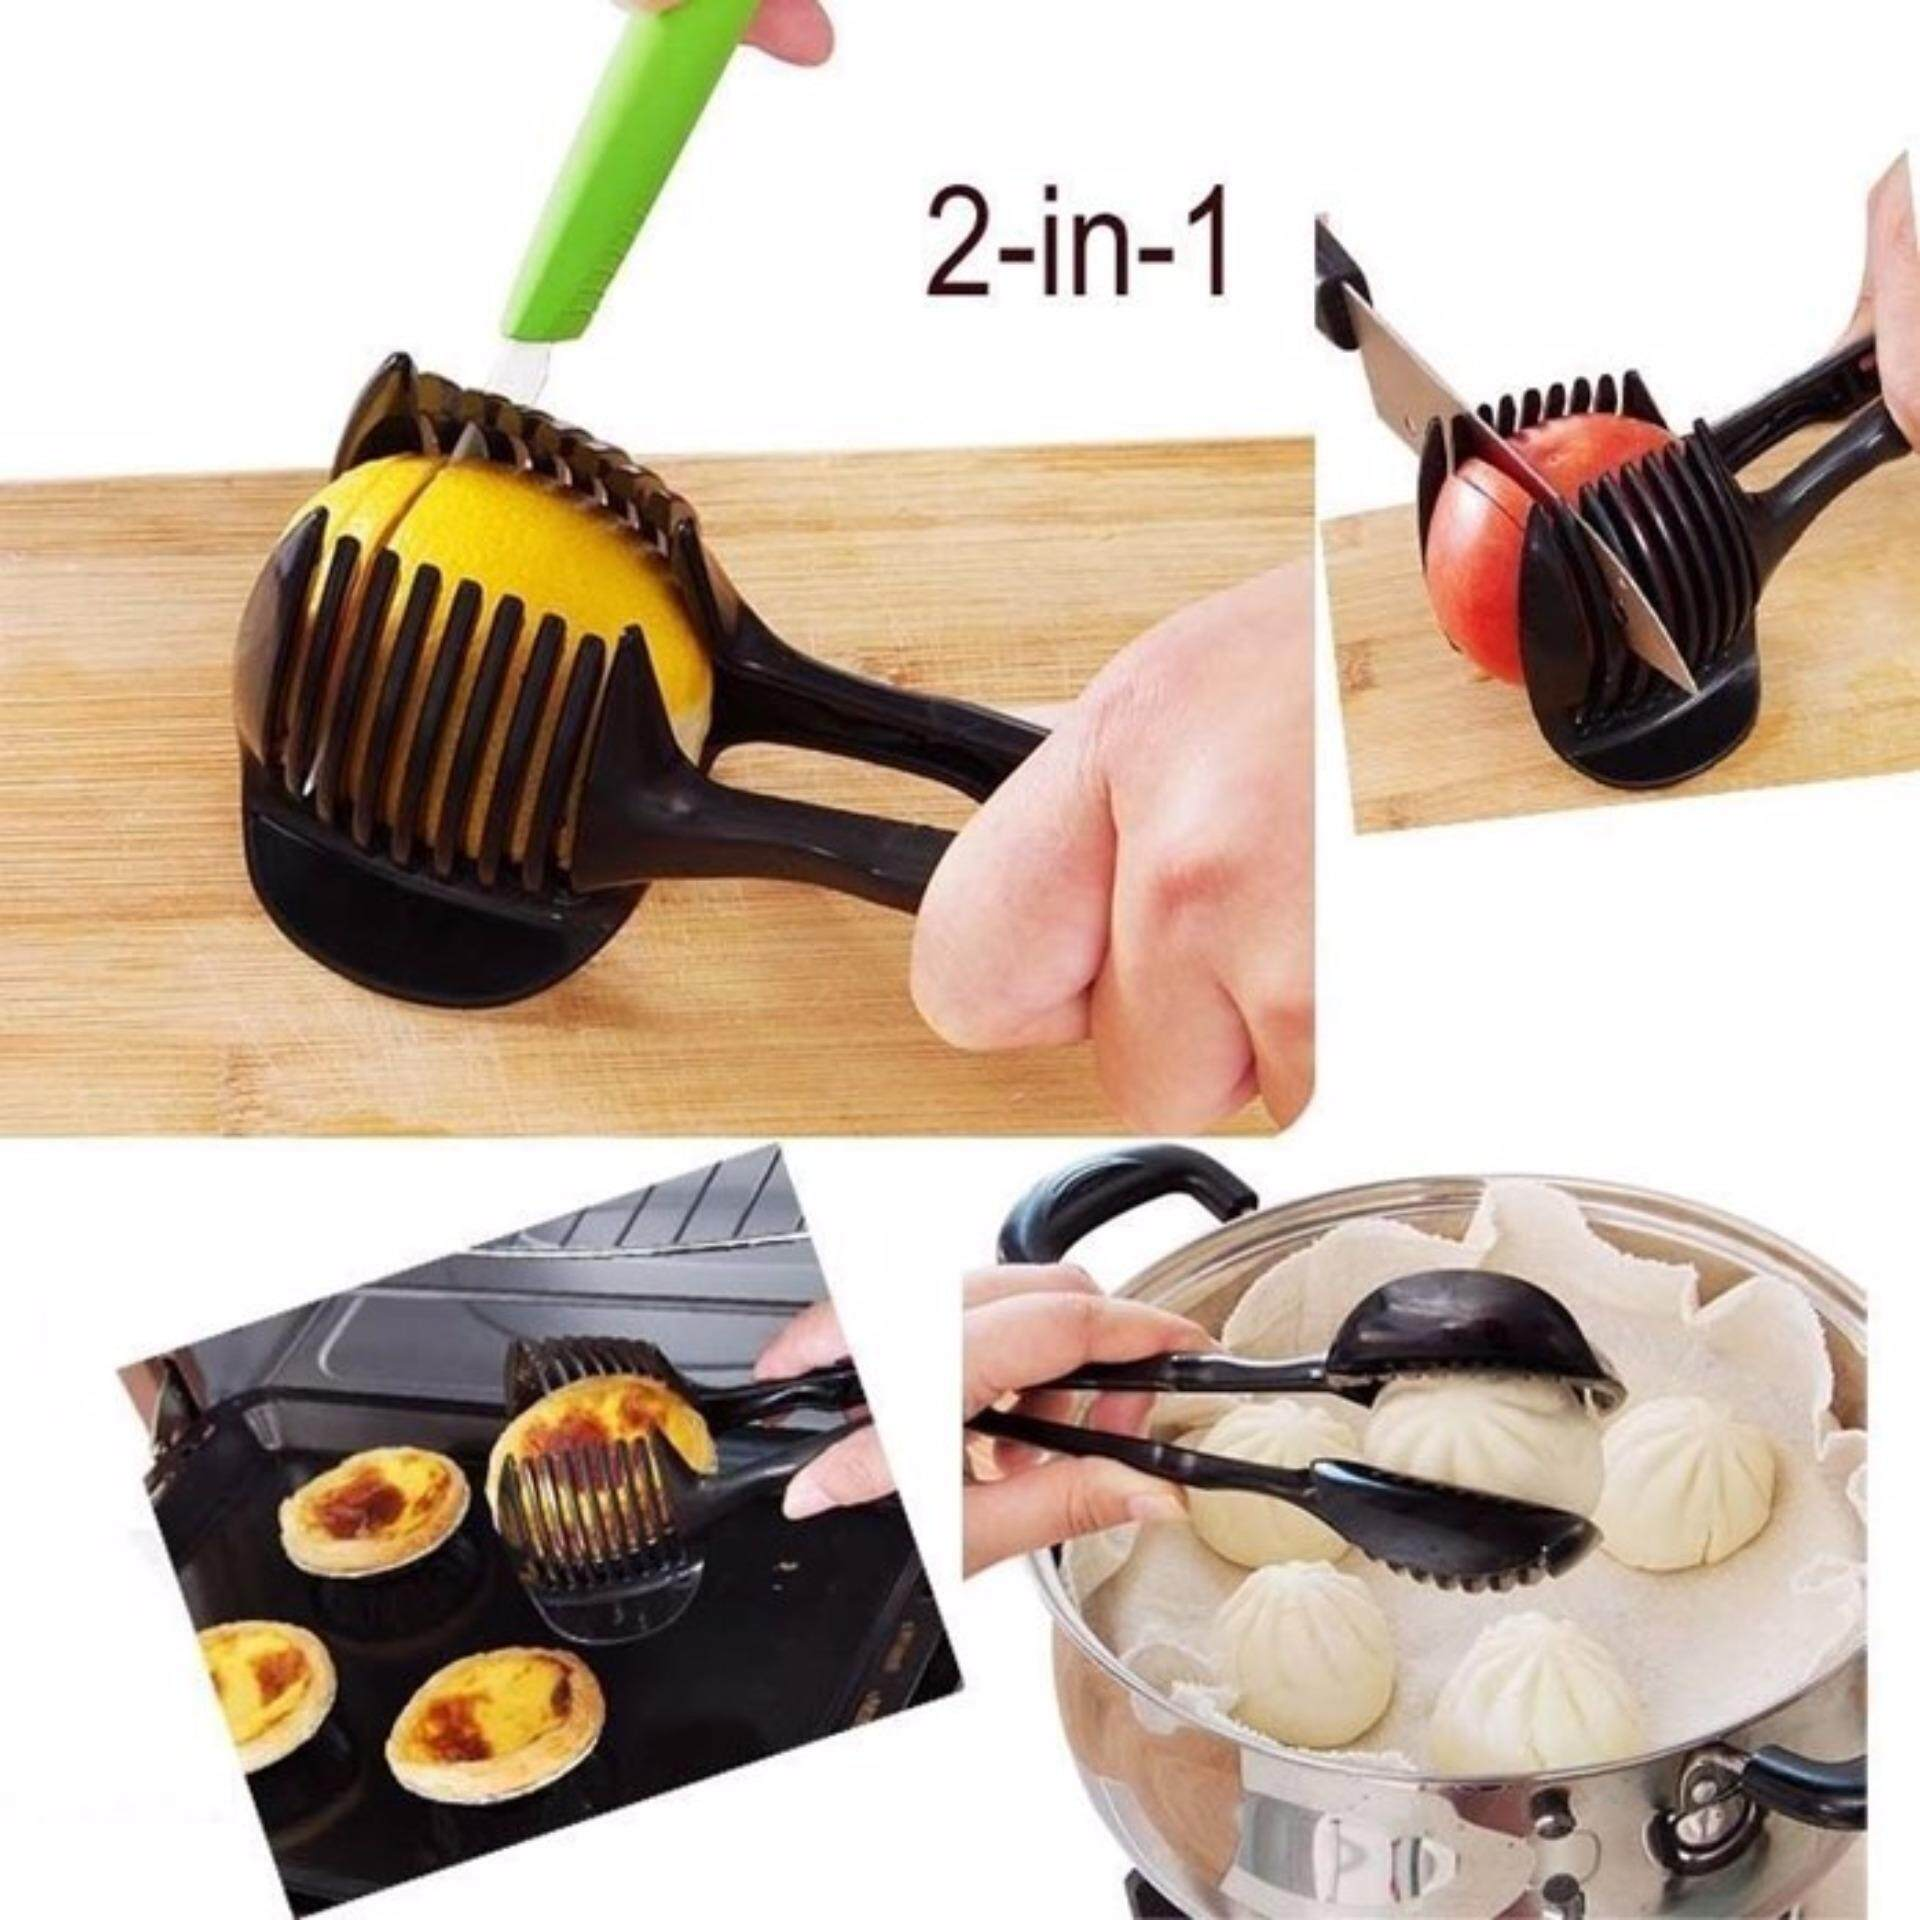 Multifunctional 2 in 1 Tomato Slices Tomato Lemon Orange Helper Convenience Portable Tiny Useful Fruit Slicer (Shun Kang)